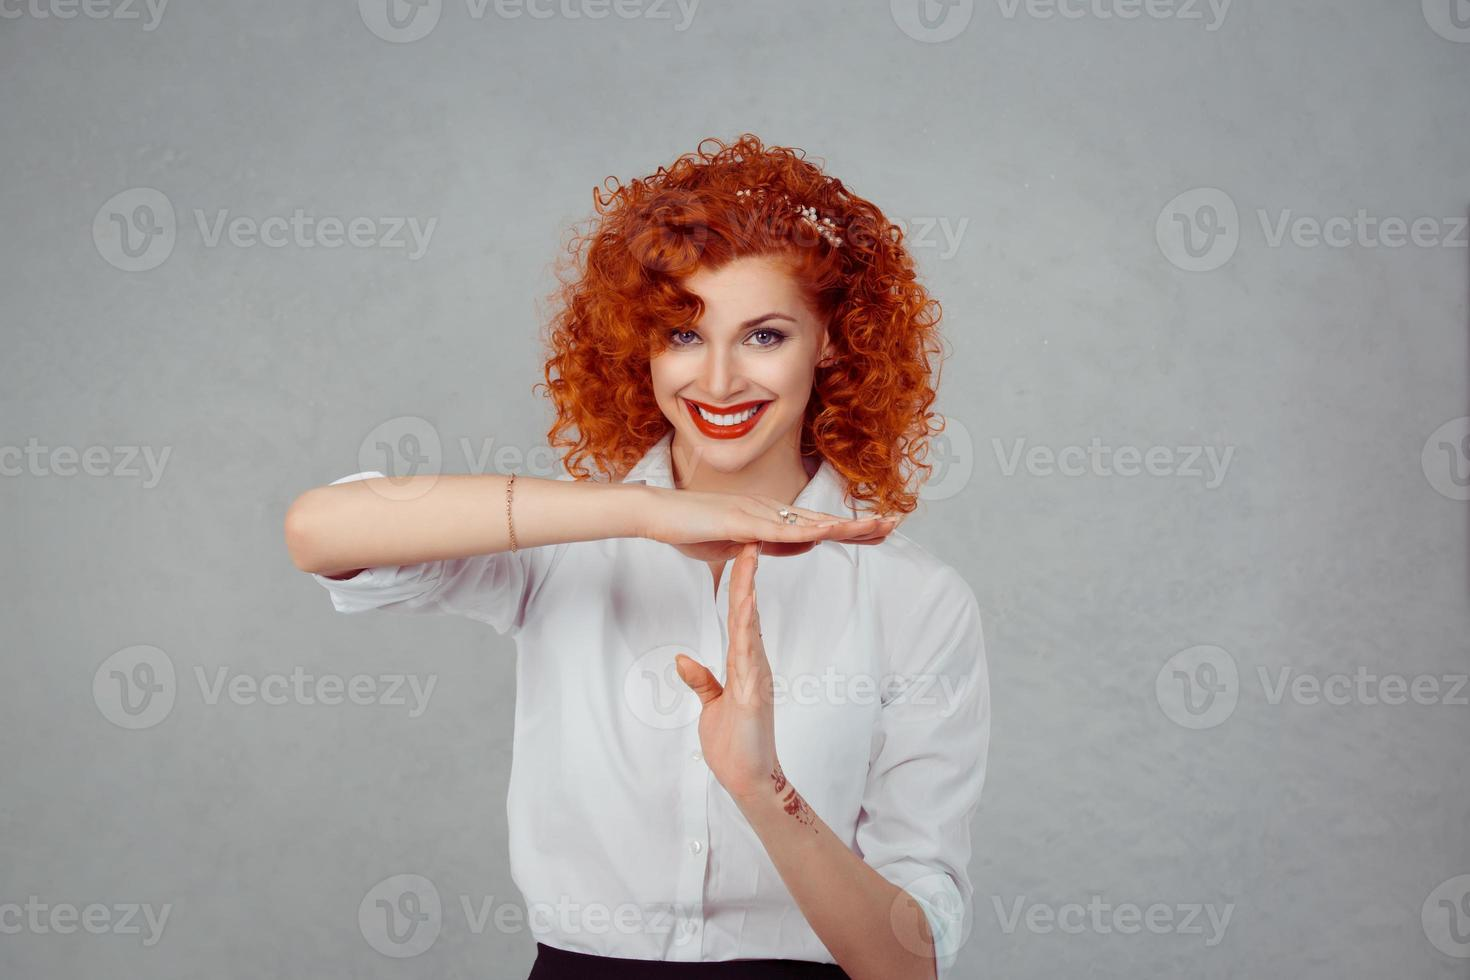 Timeout. Closeup portrait, young, happy, smiling woman showing time out gesture with hands isolated on gray wall background. Positive human emotion facial expressions, feeling body language reaction photo